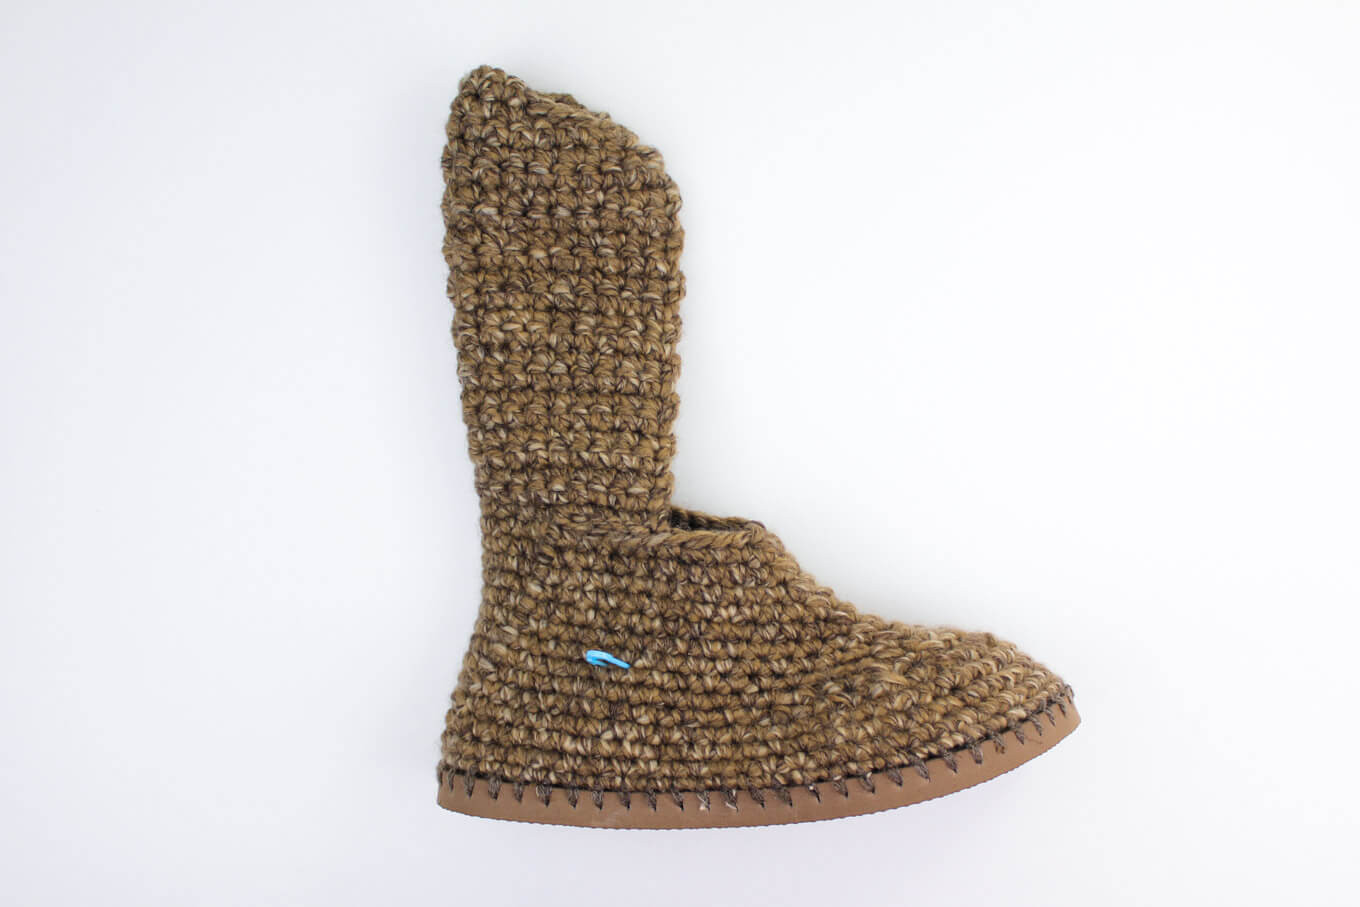 Crochet Boots Best Of Ugg Style Crochet Boots with Flip Flop soles Free Of Brilliant 43 Photos Crochet Boots